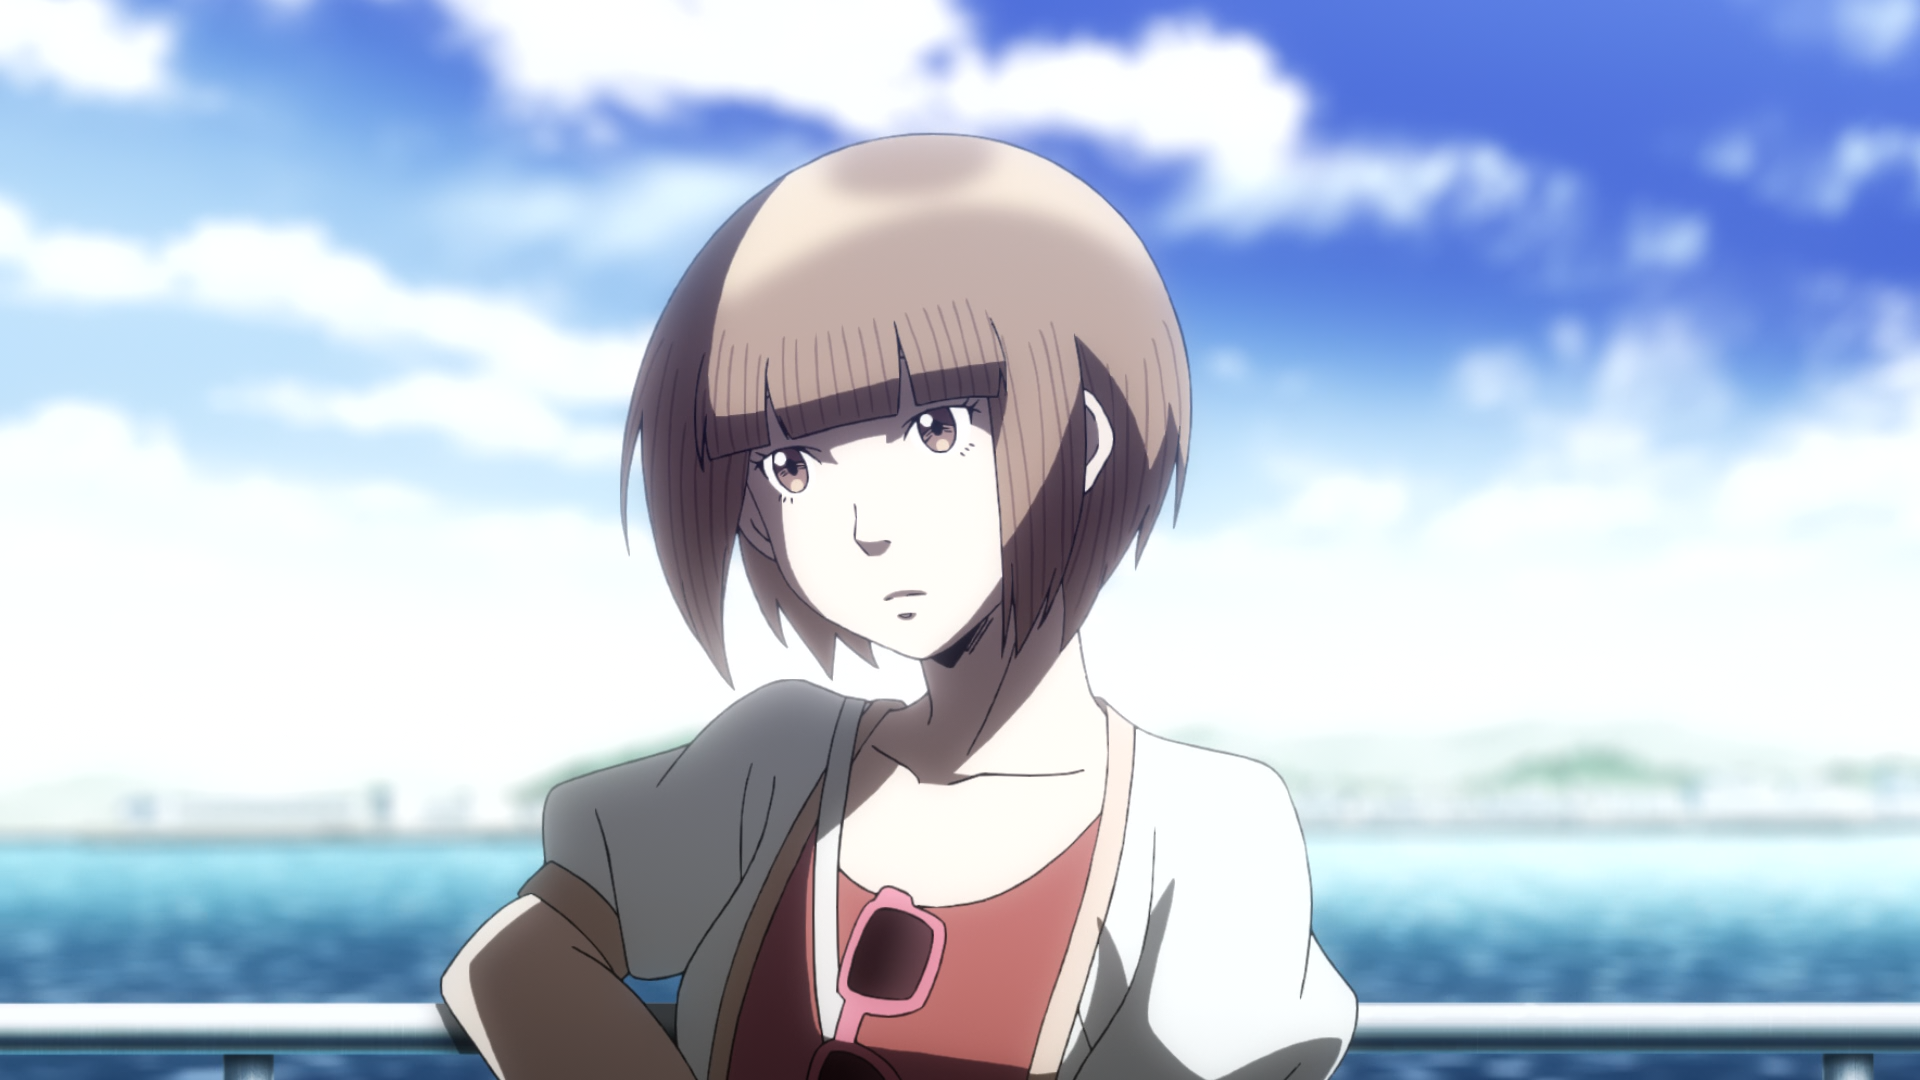 Protagonist Moe aboard a ship on the way to the island in The Perfect Insider